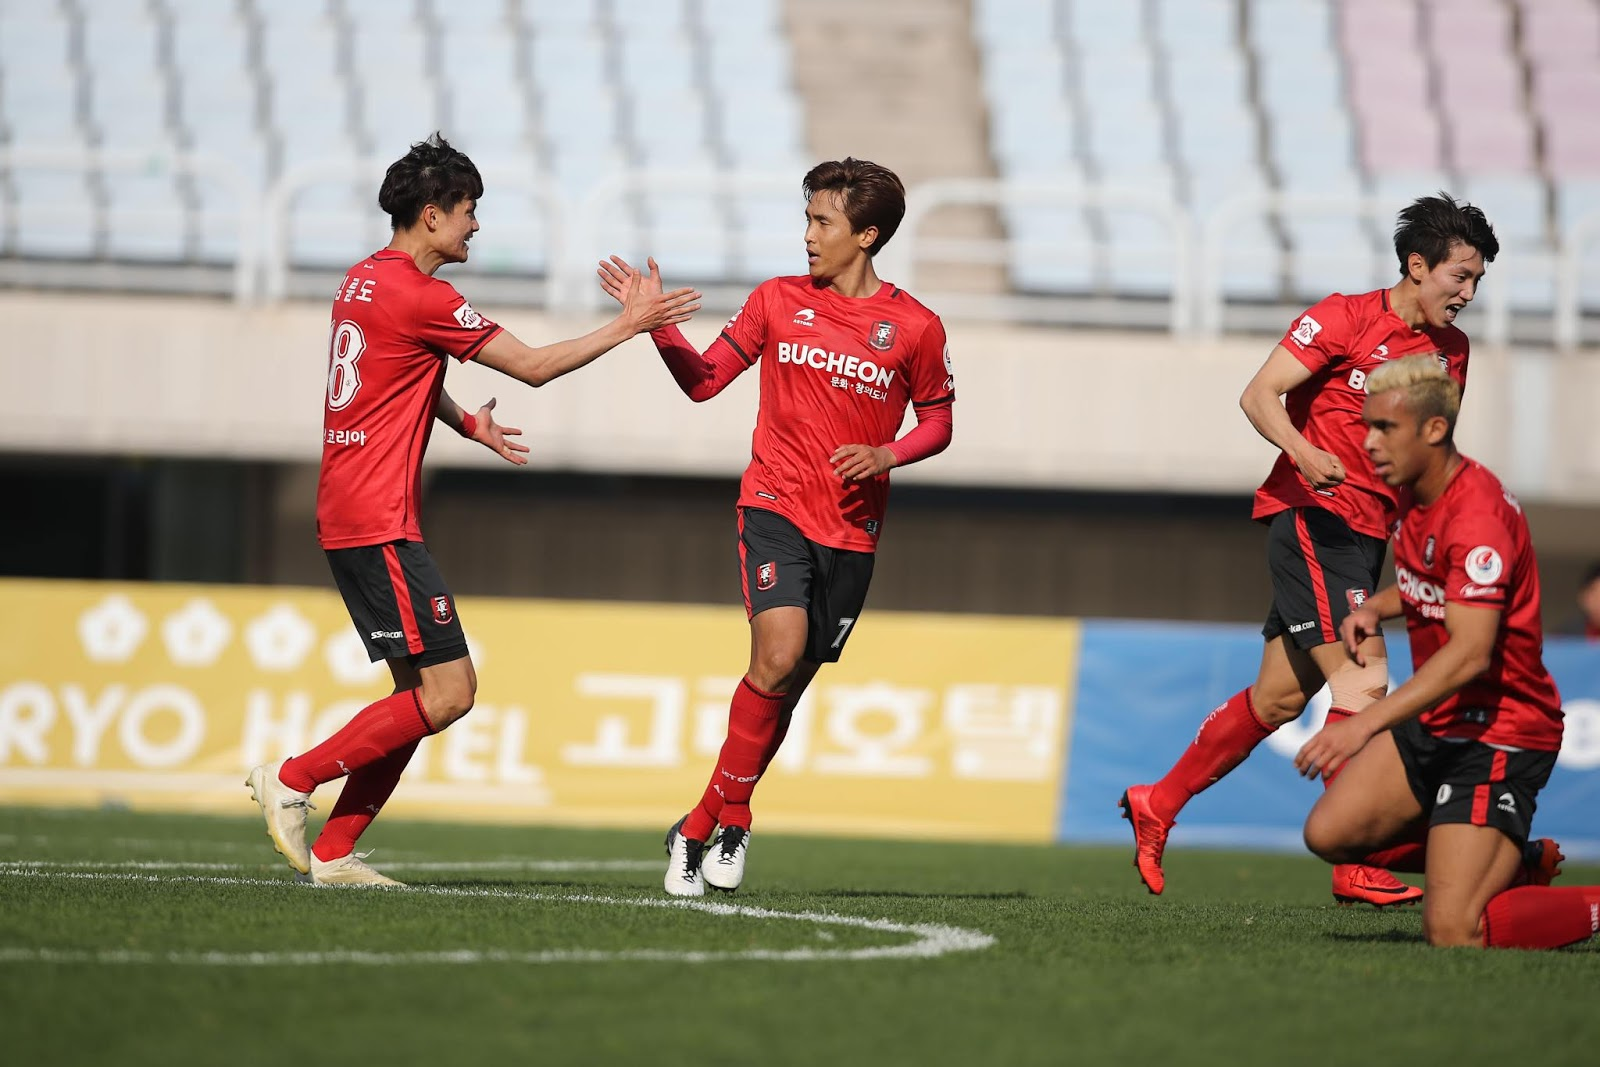 K League 2 Preview: Bucheon 1995 vs Asan Mugunghwa